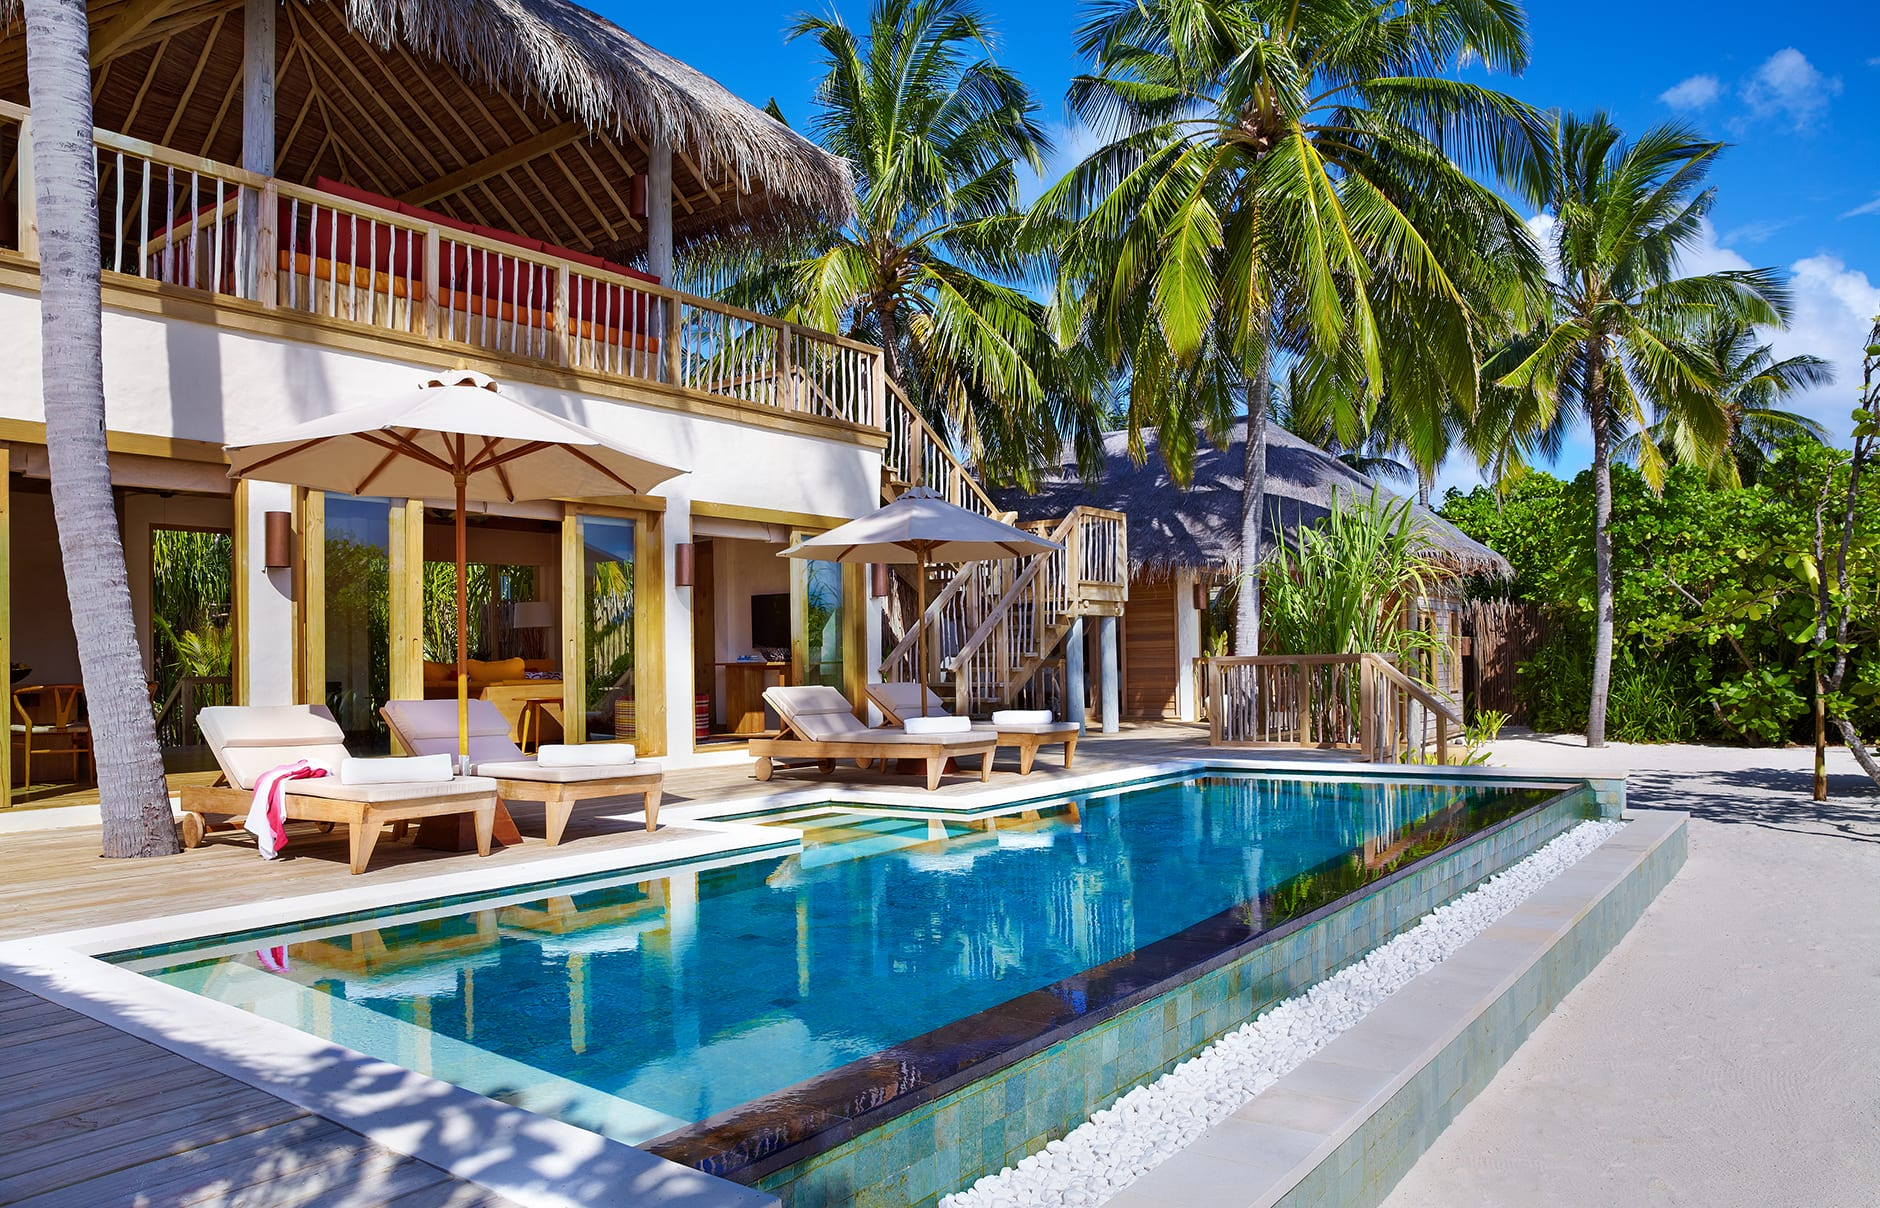 Two Bedroom Ocean Beach Villa with pool. Six Senses Laamu, Maldives. © Six Senses Resorts & Spas